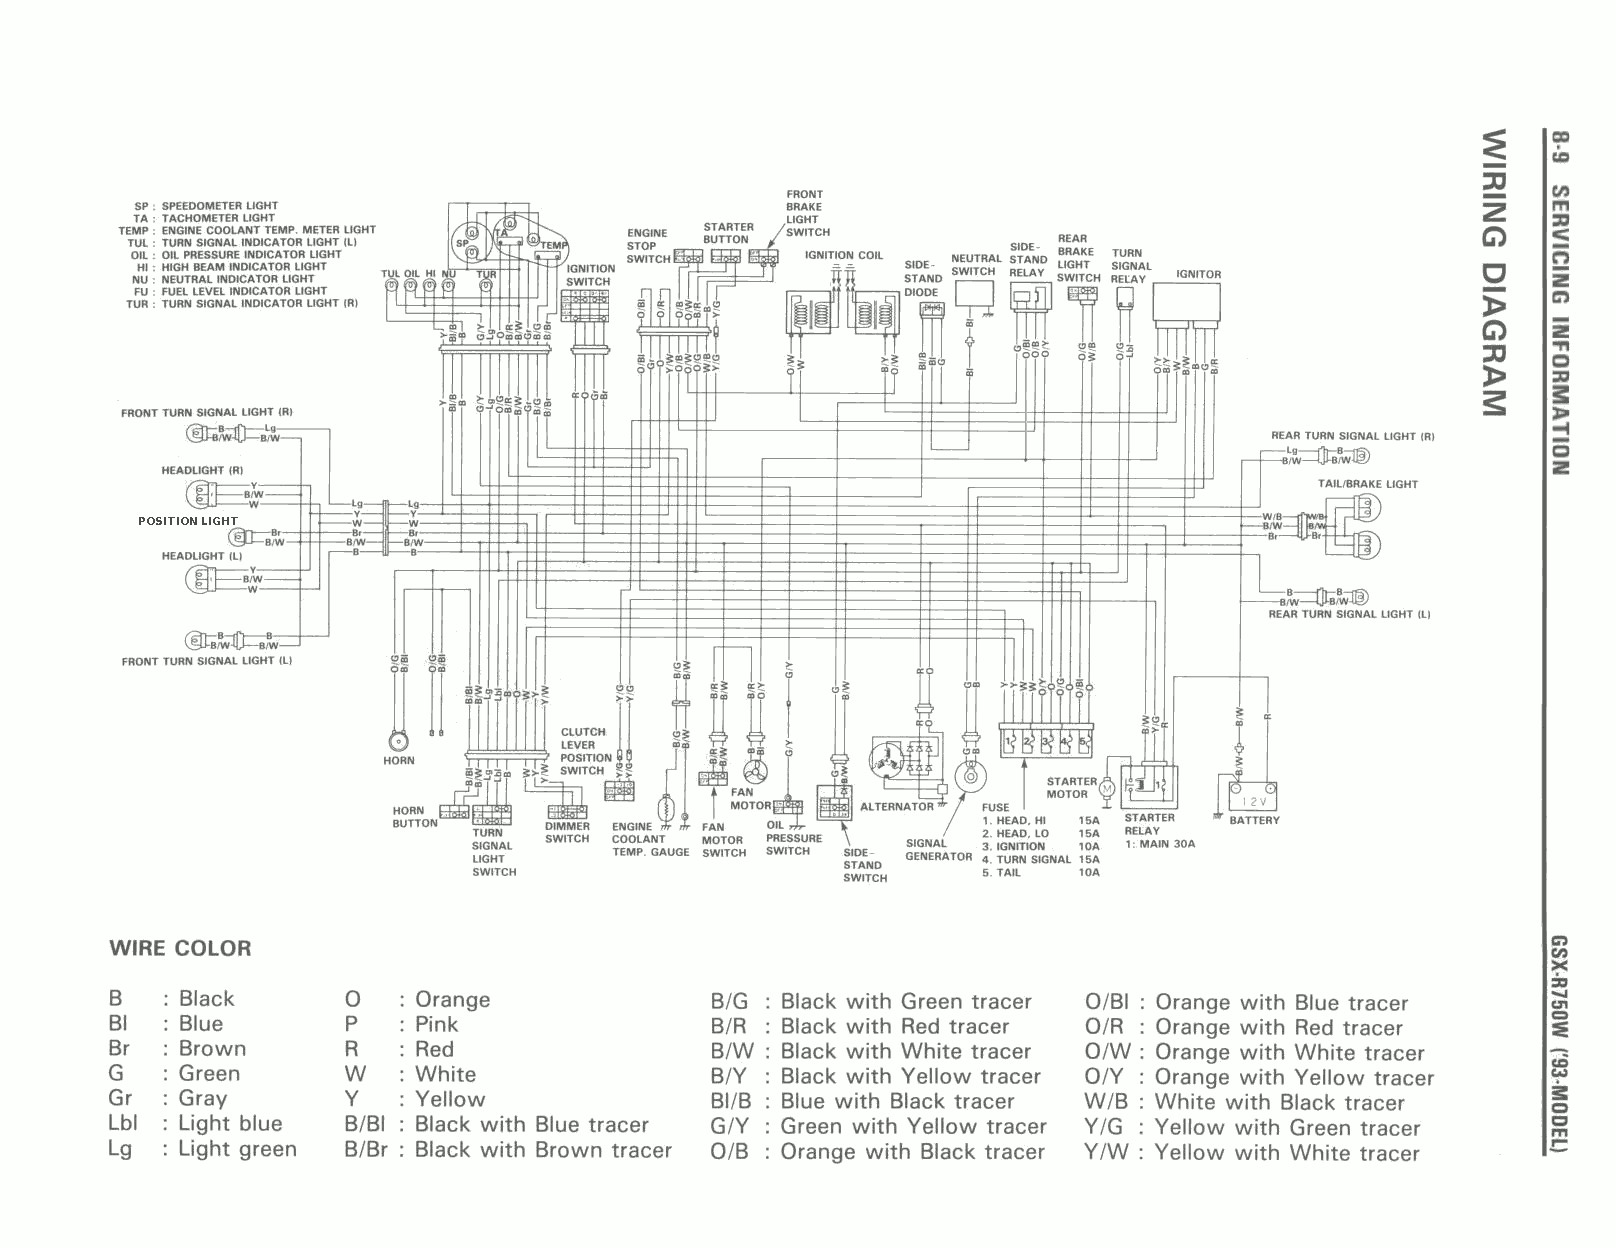 2004 gsxr 600 headlight wiring diagram ammeter car gsx suzuki 1997 r600v swift 1998